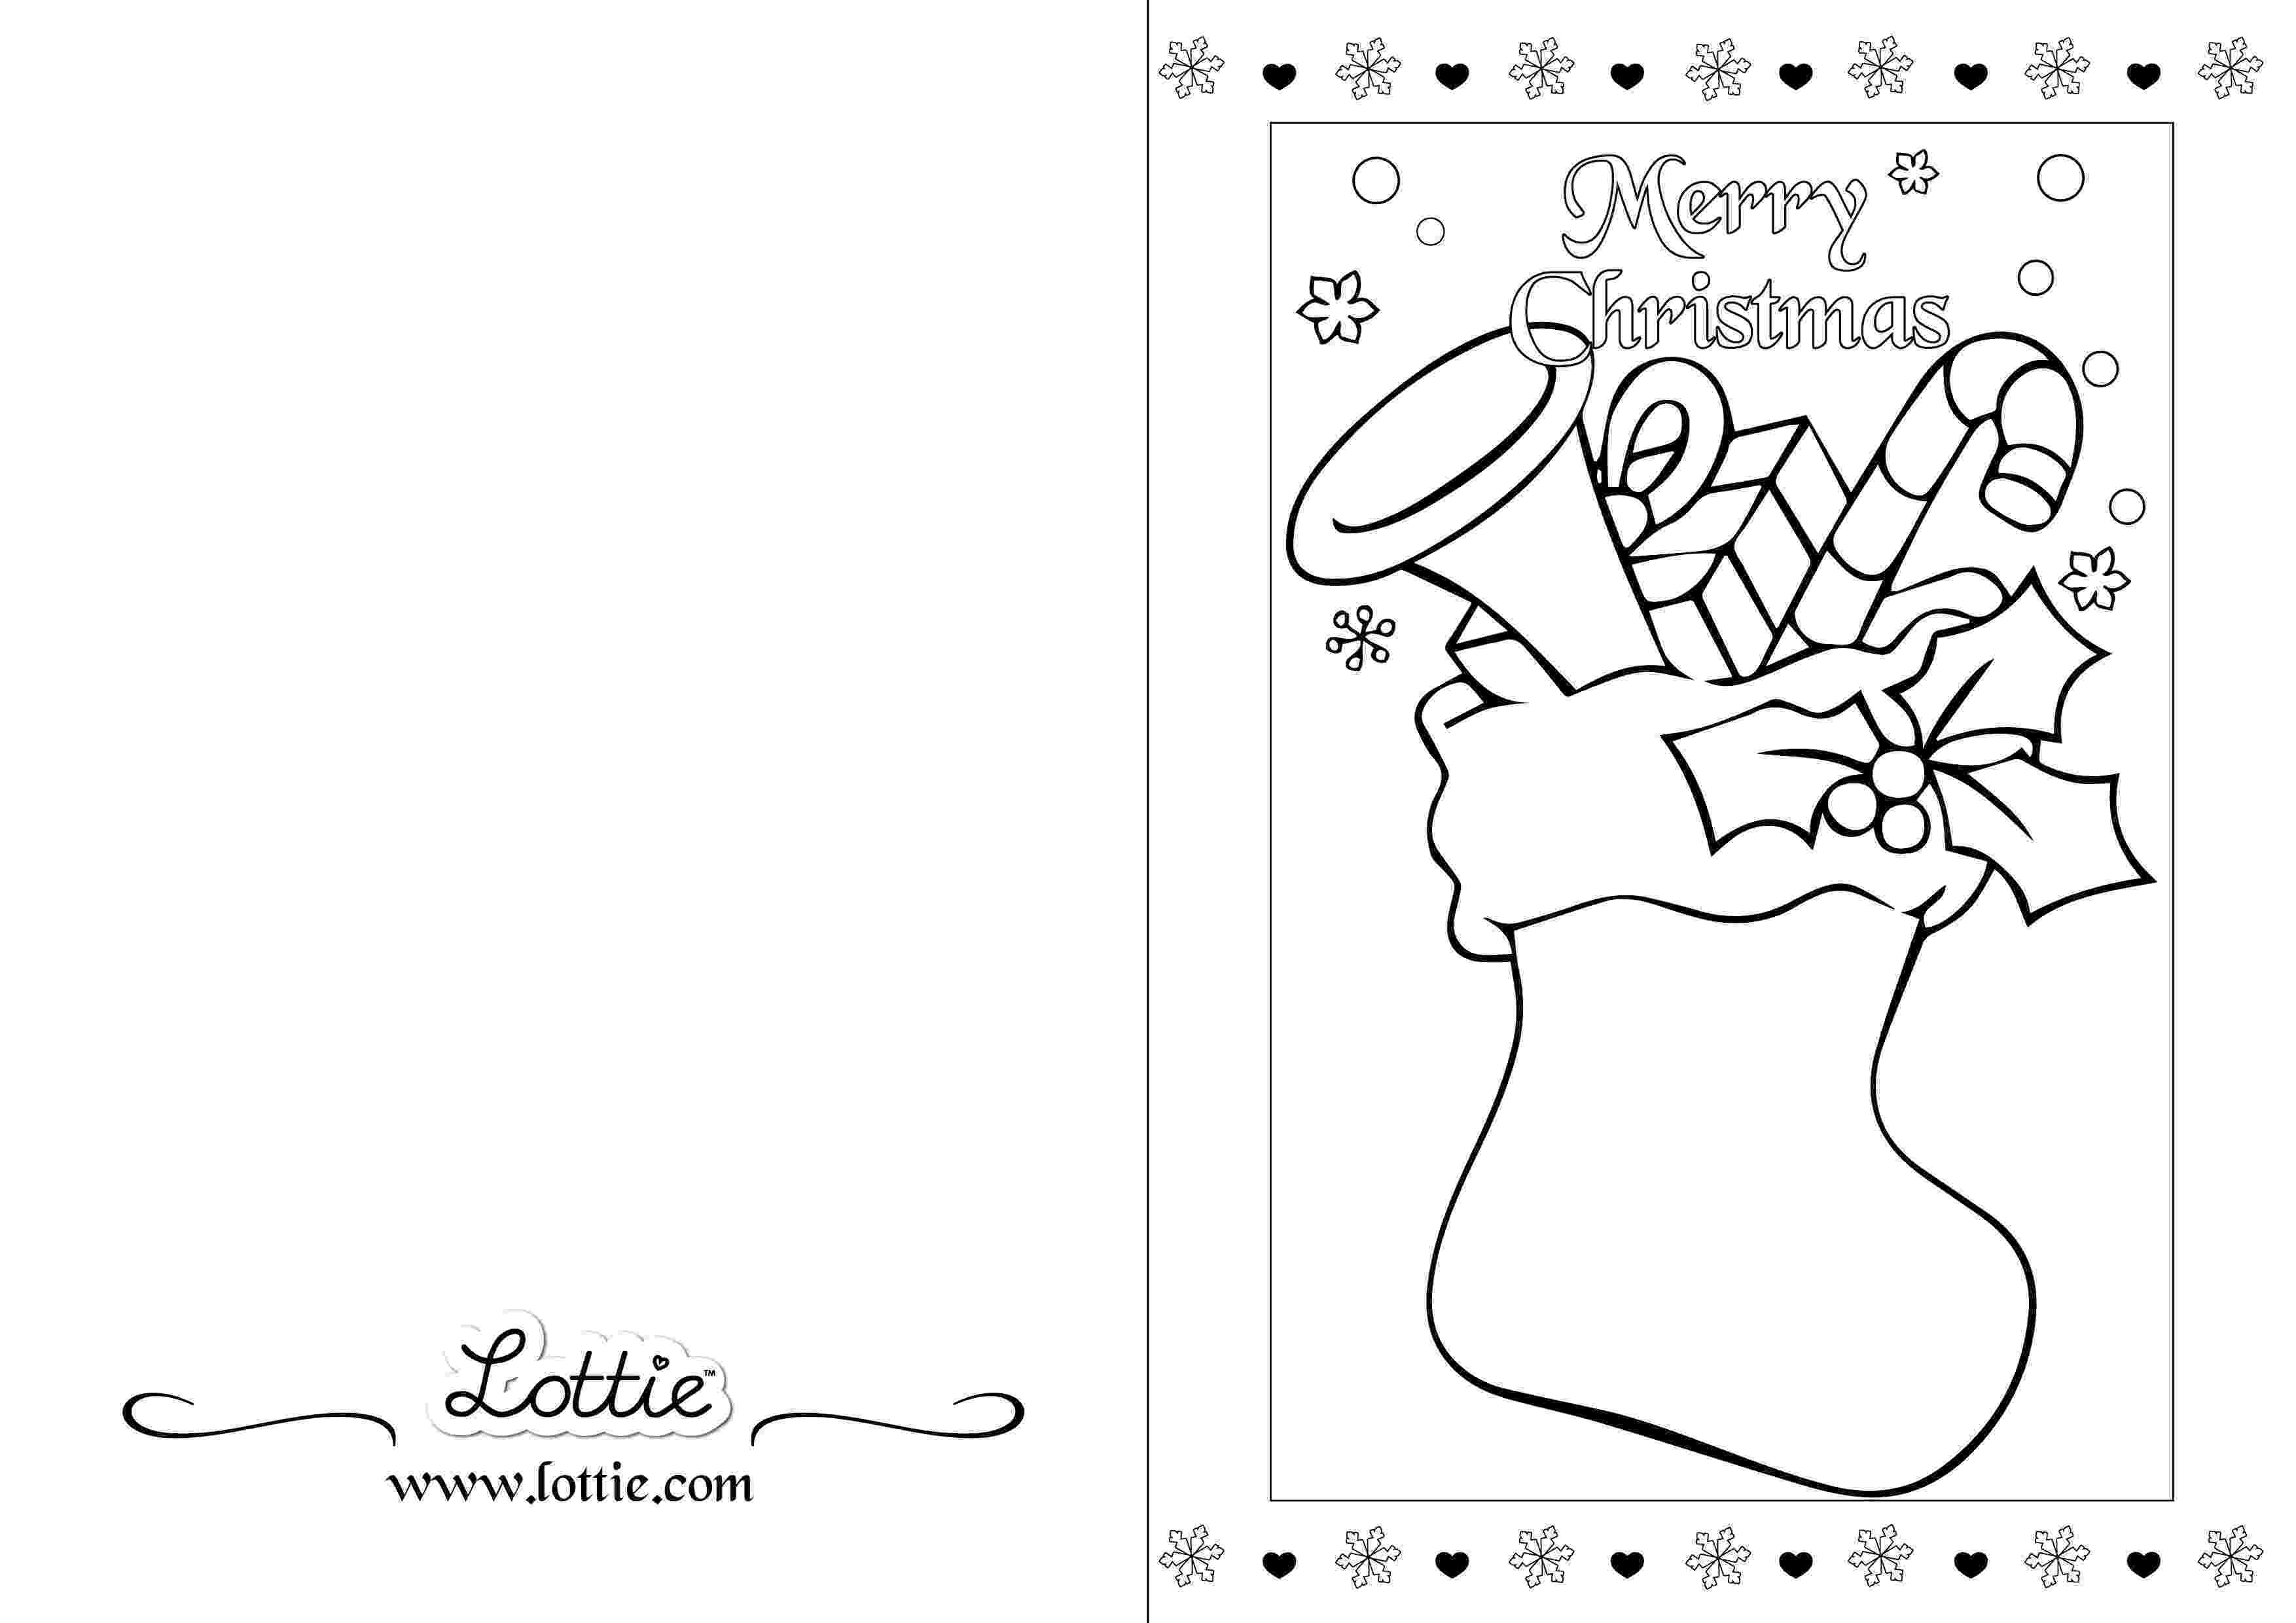 christmas cards coloring sheets merry christmas card coloring page getcoloringpagescom cards christmas coloring sheets